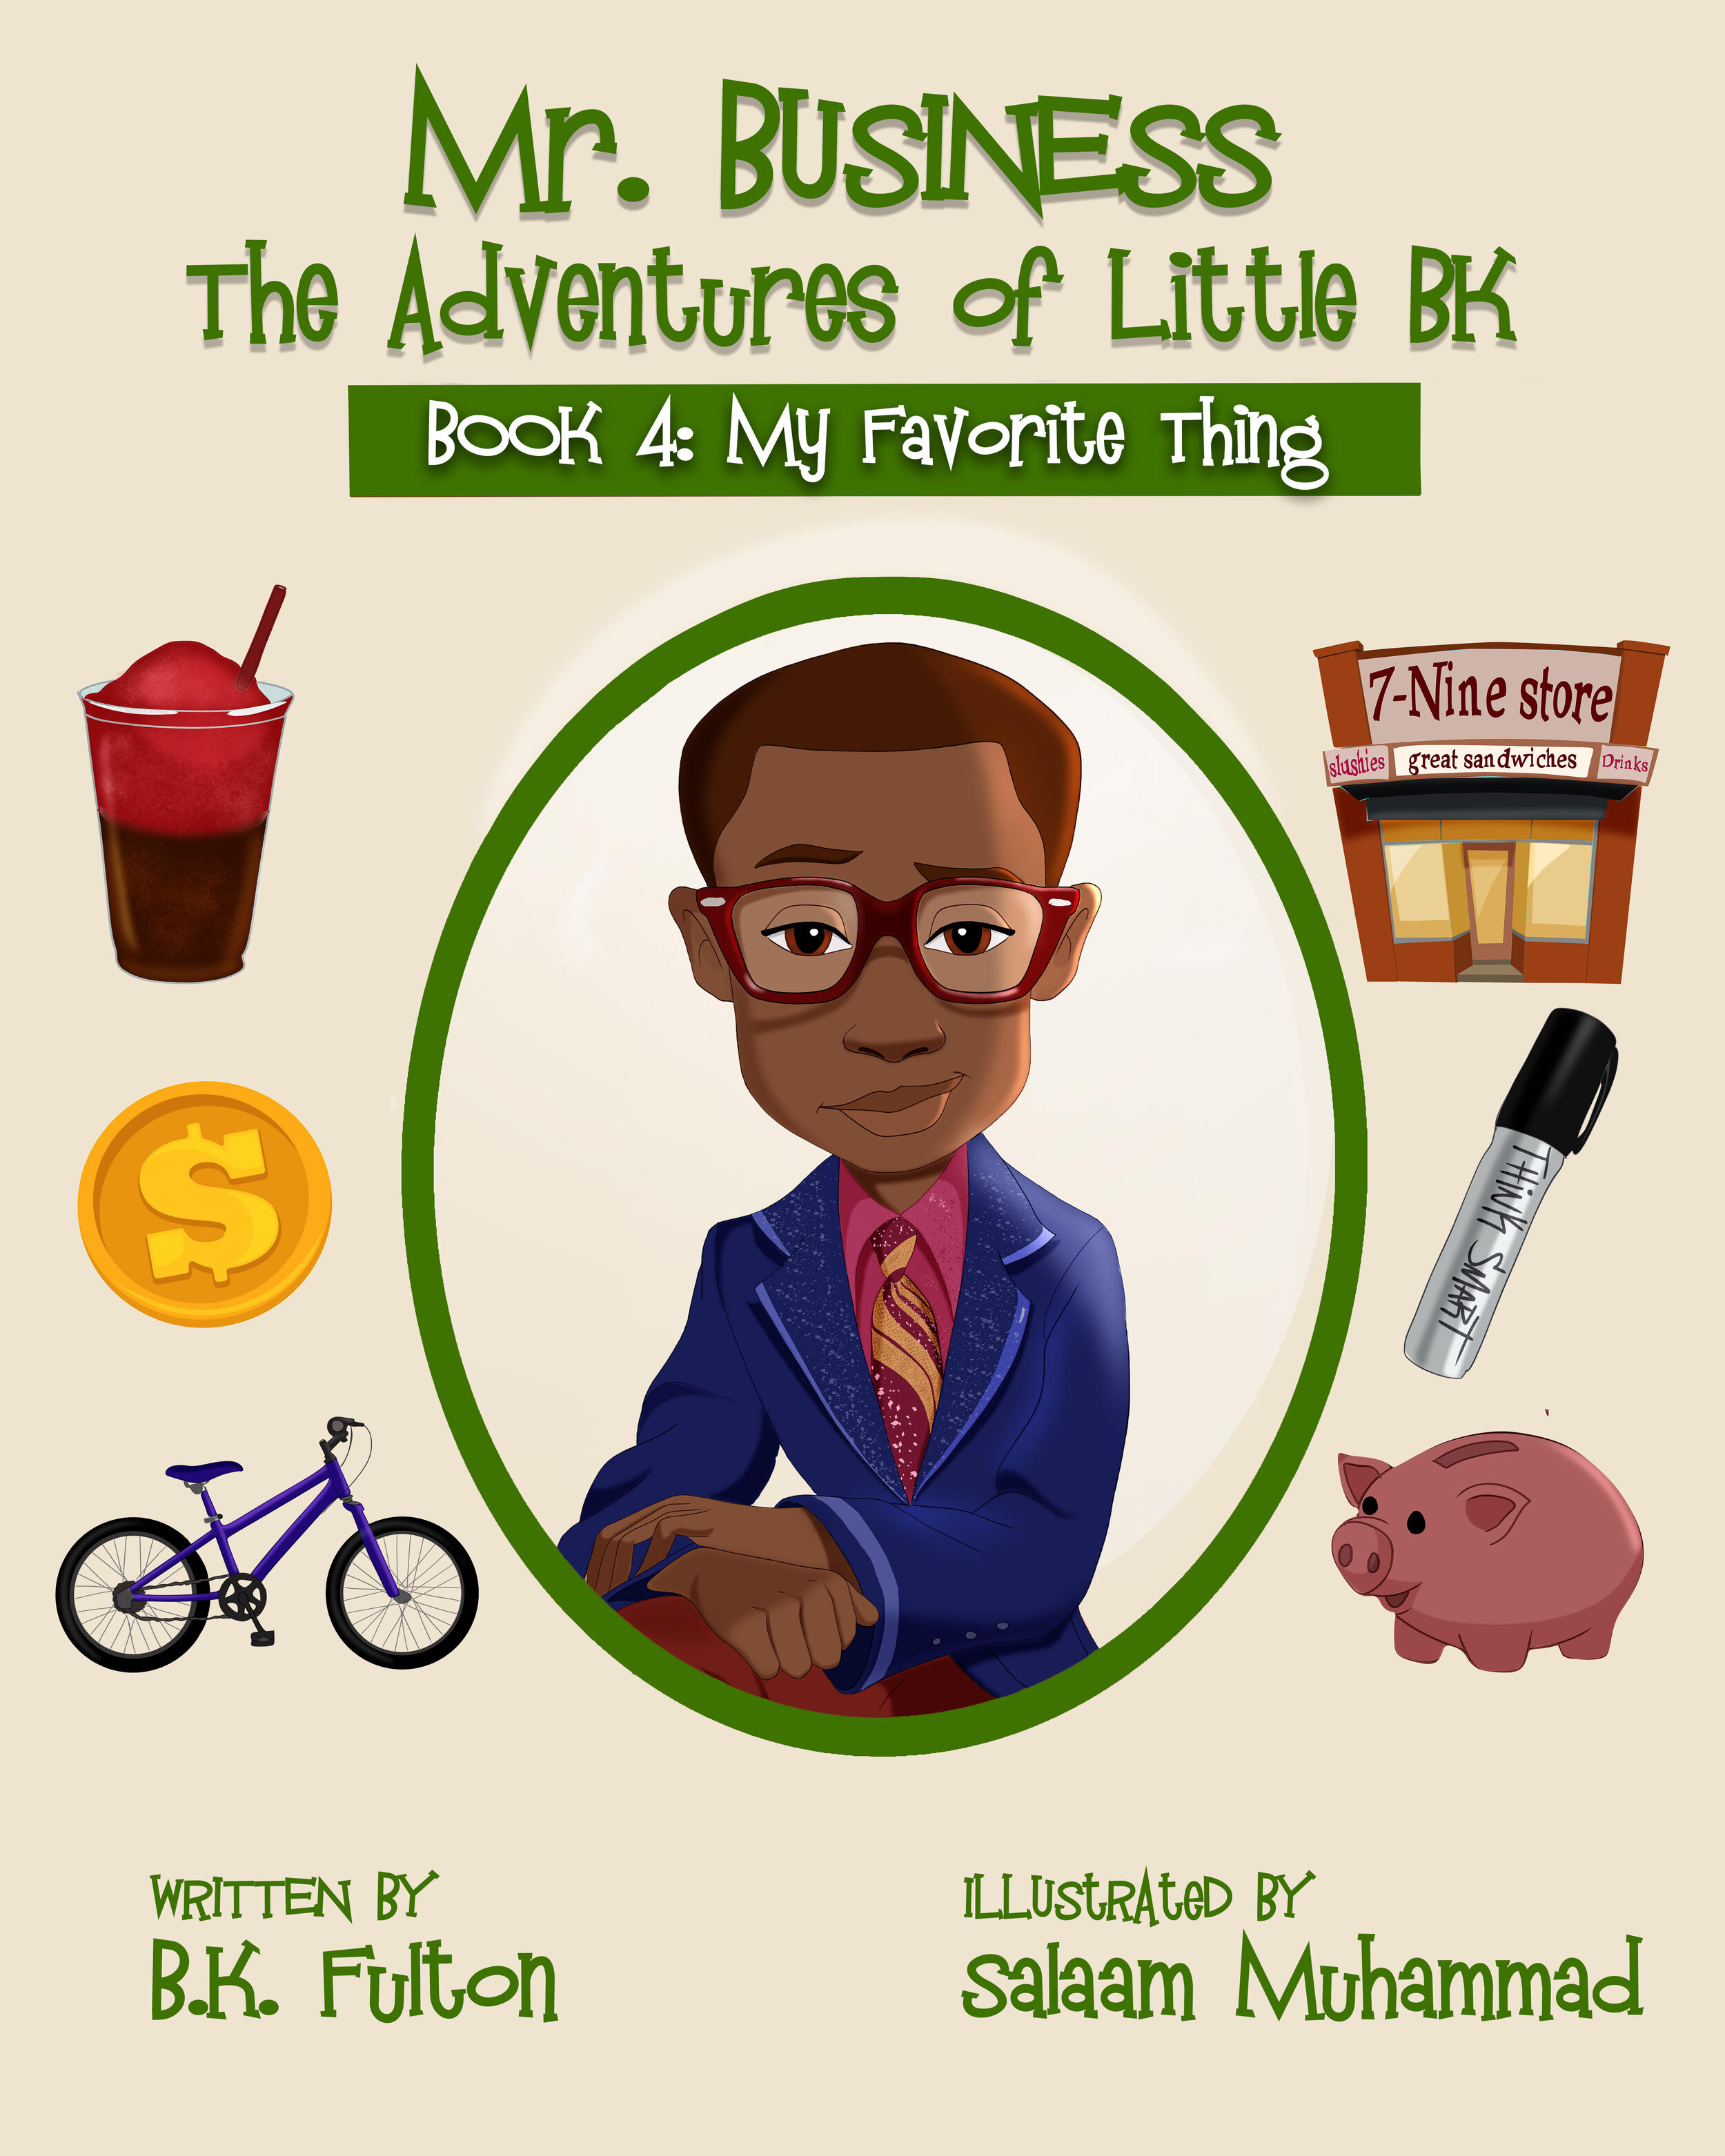 Mr. Business: Book 4 - Written byBK FultonIllustrated bySalaam MuhammadSYNOPSISMR. BUSINESS IS LITTLE BK, A THIRD-GRADE STUDENT WHO IS LEARNING HIS WAY AROUND A NEW SCHOOL AND A NEW NEIGHBORHOOD. ON THIS ADVENTURE, BK WORKS SMART TO EARN MONEY SO THAT HE AND HIS FAITHFUL DOG RUSTY CAN MAKE THEIR WEEKEND RUN TO THE STORE FOR A SLUSHY - BK'S FAVORITE THING. ONE DAY BK FINDS SOME OLD COINS IN THE HOUSE AND REALIZES THEY BELONG TO SOMEONE ELSE. HE HAS TO FIGURE OUT WHAT TO DO. FOLLOW BK ON HIS ADVENTURES AS HE LEARNS ABOUT LIFE. CHILDREN AND PARENTS ALIKE LOVE THE VALUES OF THIS DYNAMIC STORY AND HOW IT ENCOURAGES CHILDREN TO BE TRUE TO WHO THEY ARE.